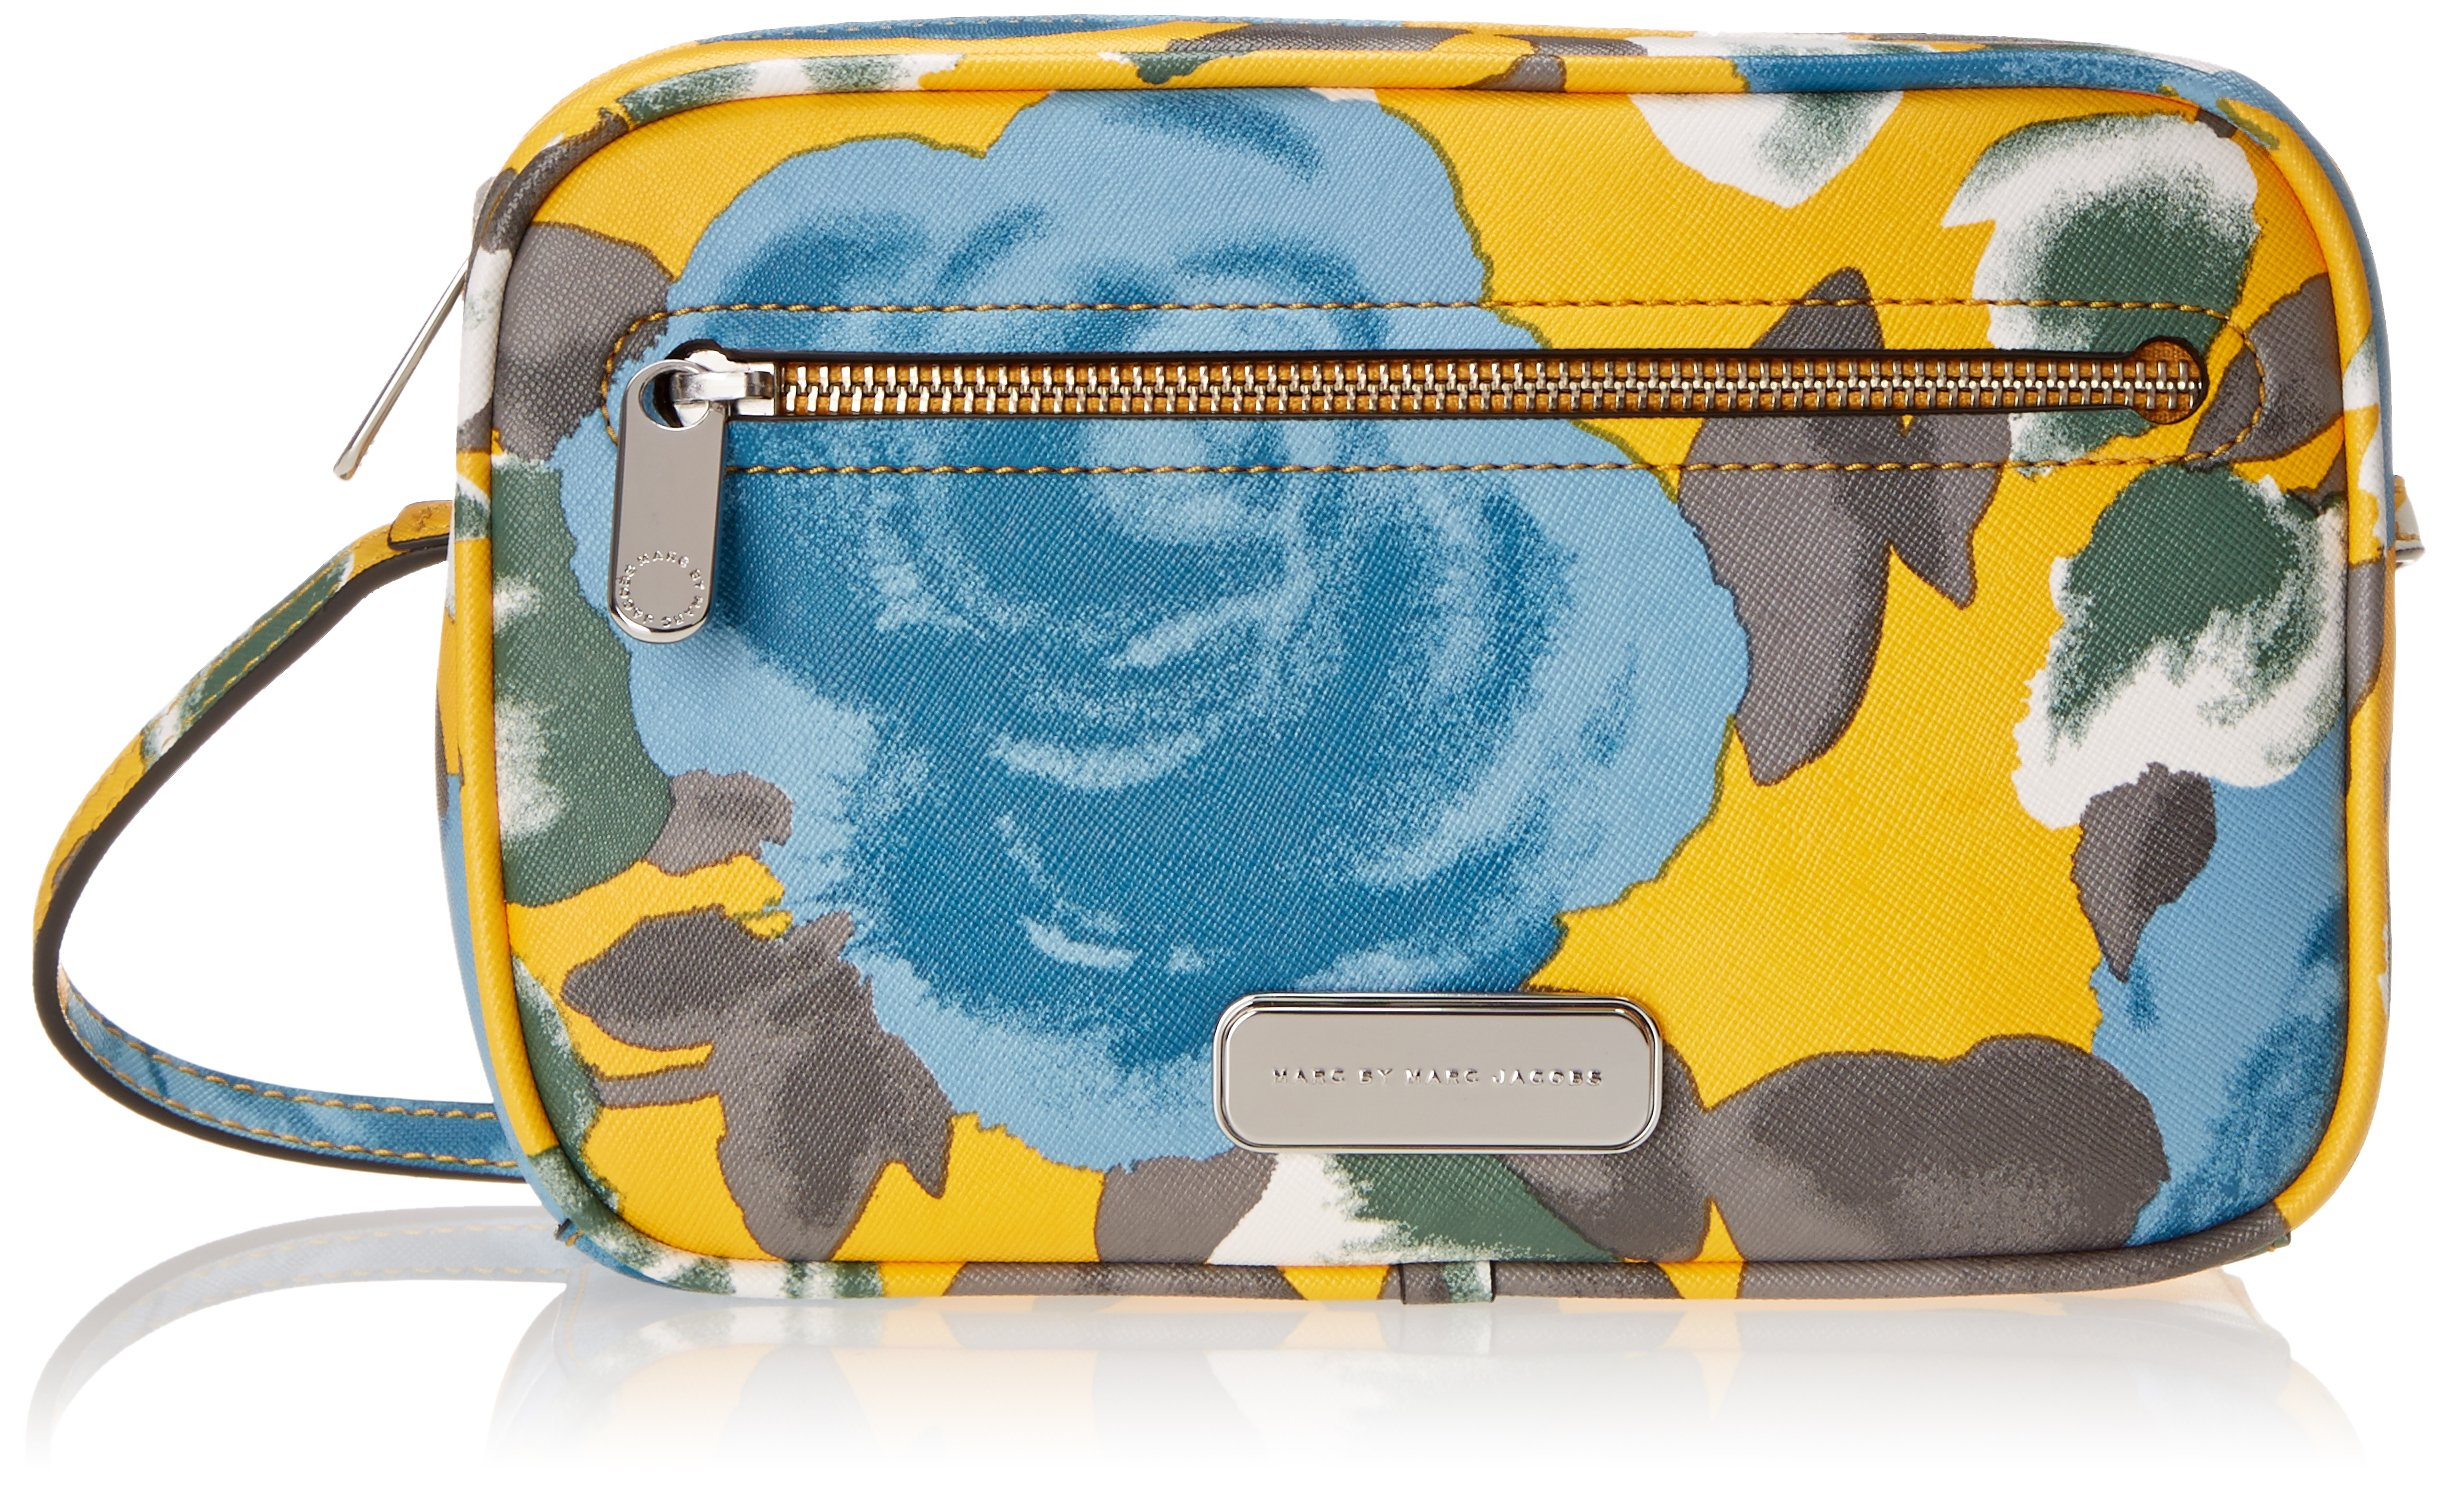 Marc by Marc Jacobs Sally Jerrie Rose Sally Cross Body, Yellow Jacket Multi, One Size